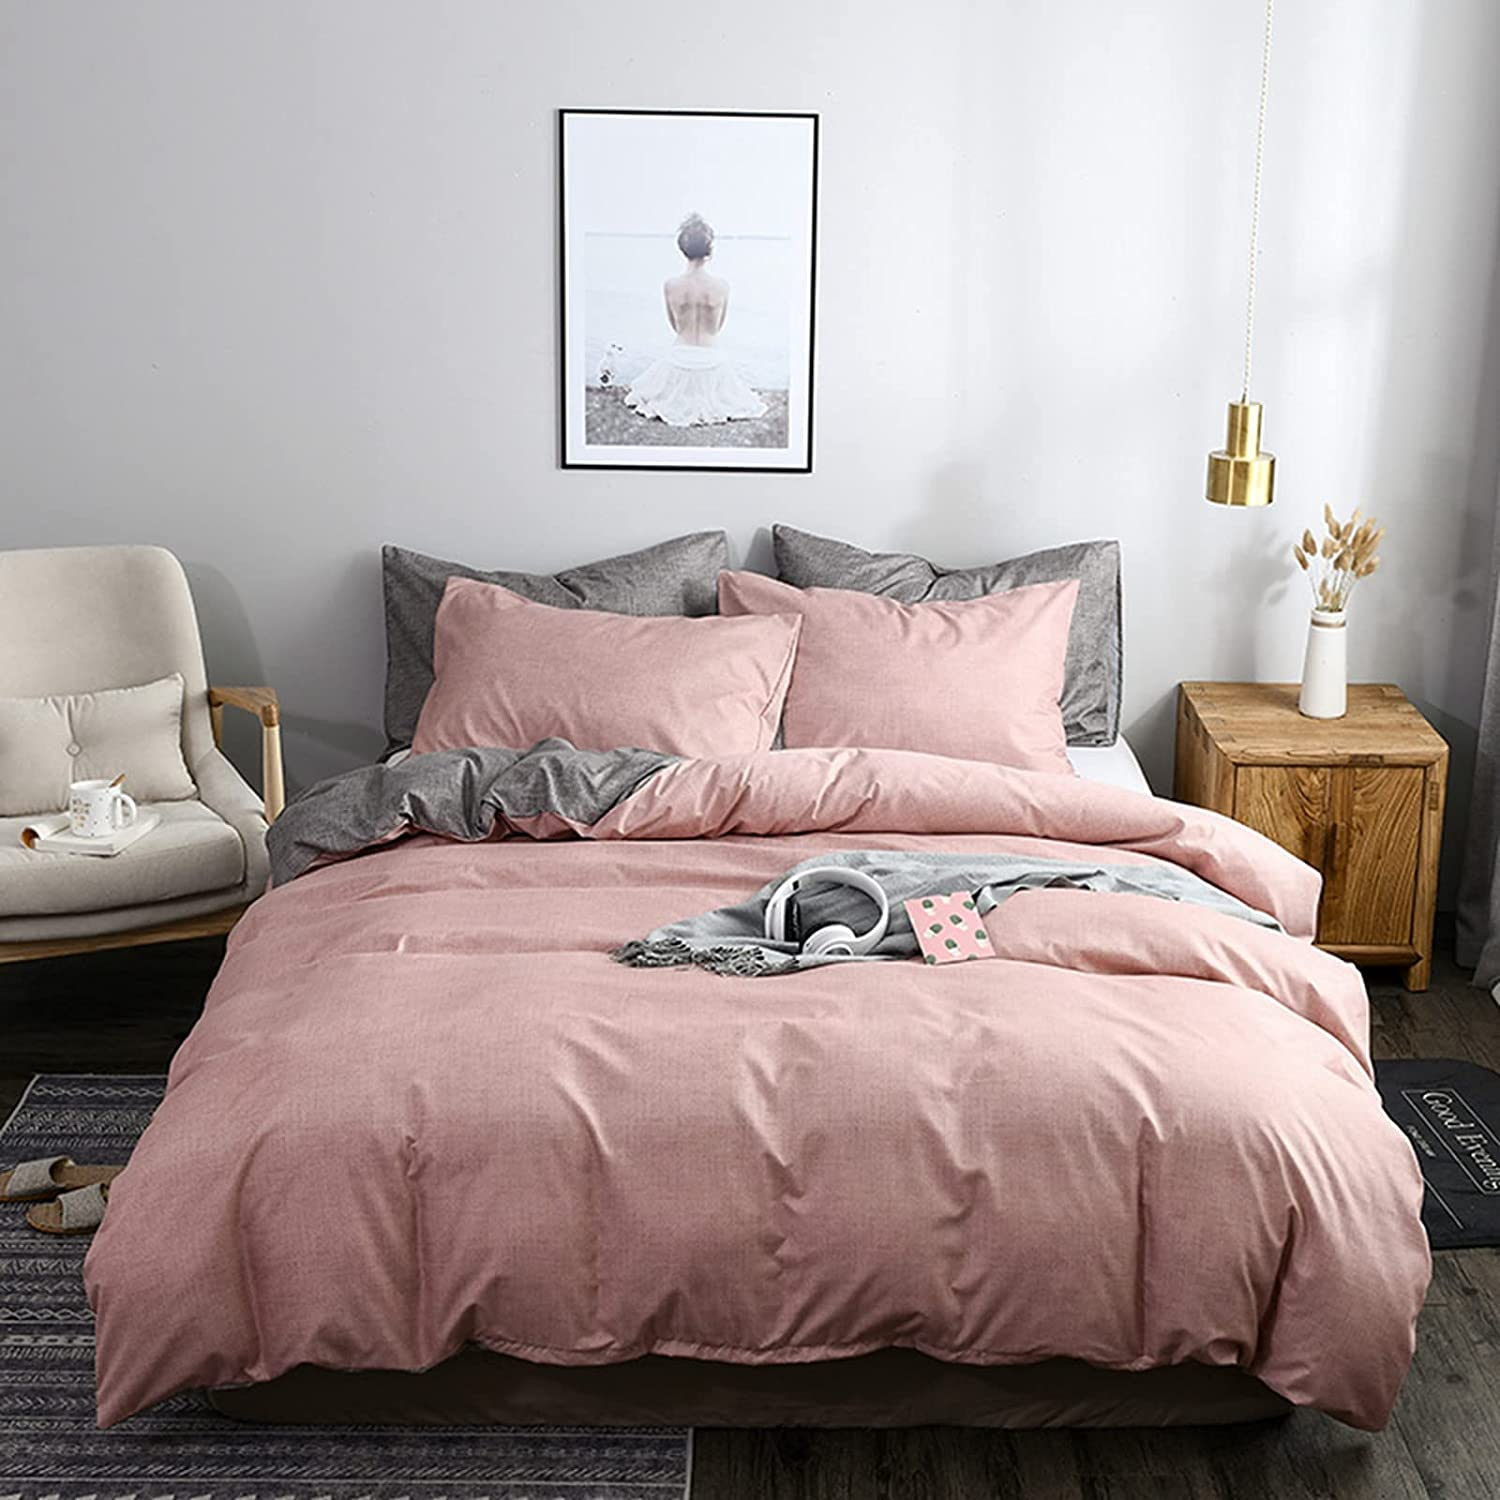 NNKI Fashionable Modern Style Discount mail order Bedding Set Cov Cocoa Duvet Color Max 84% OFF